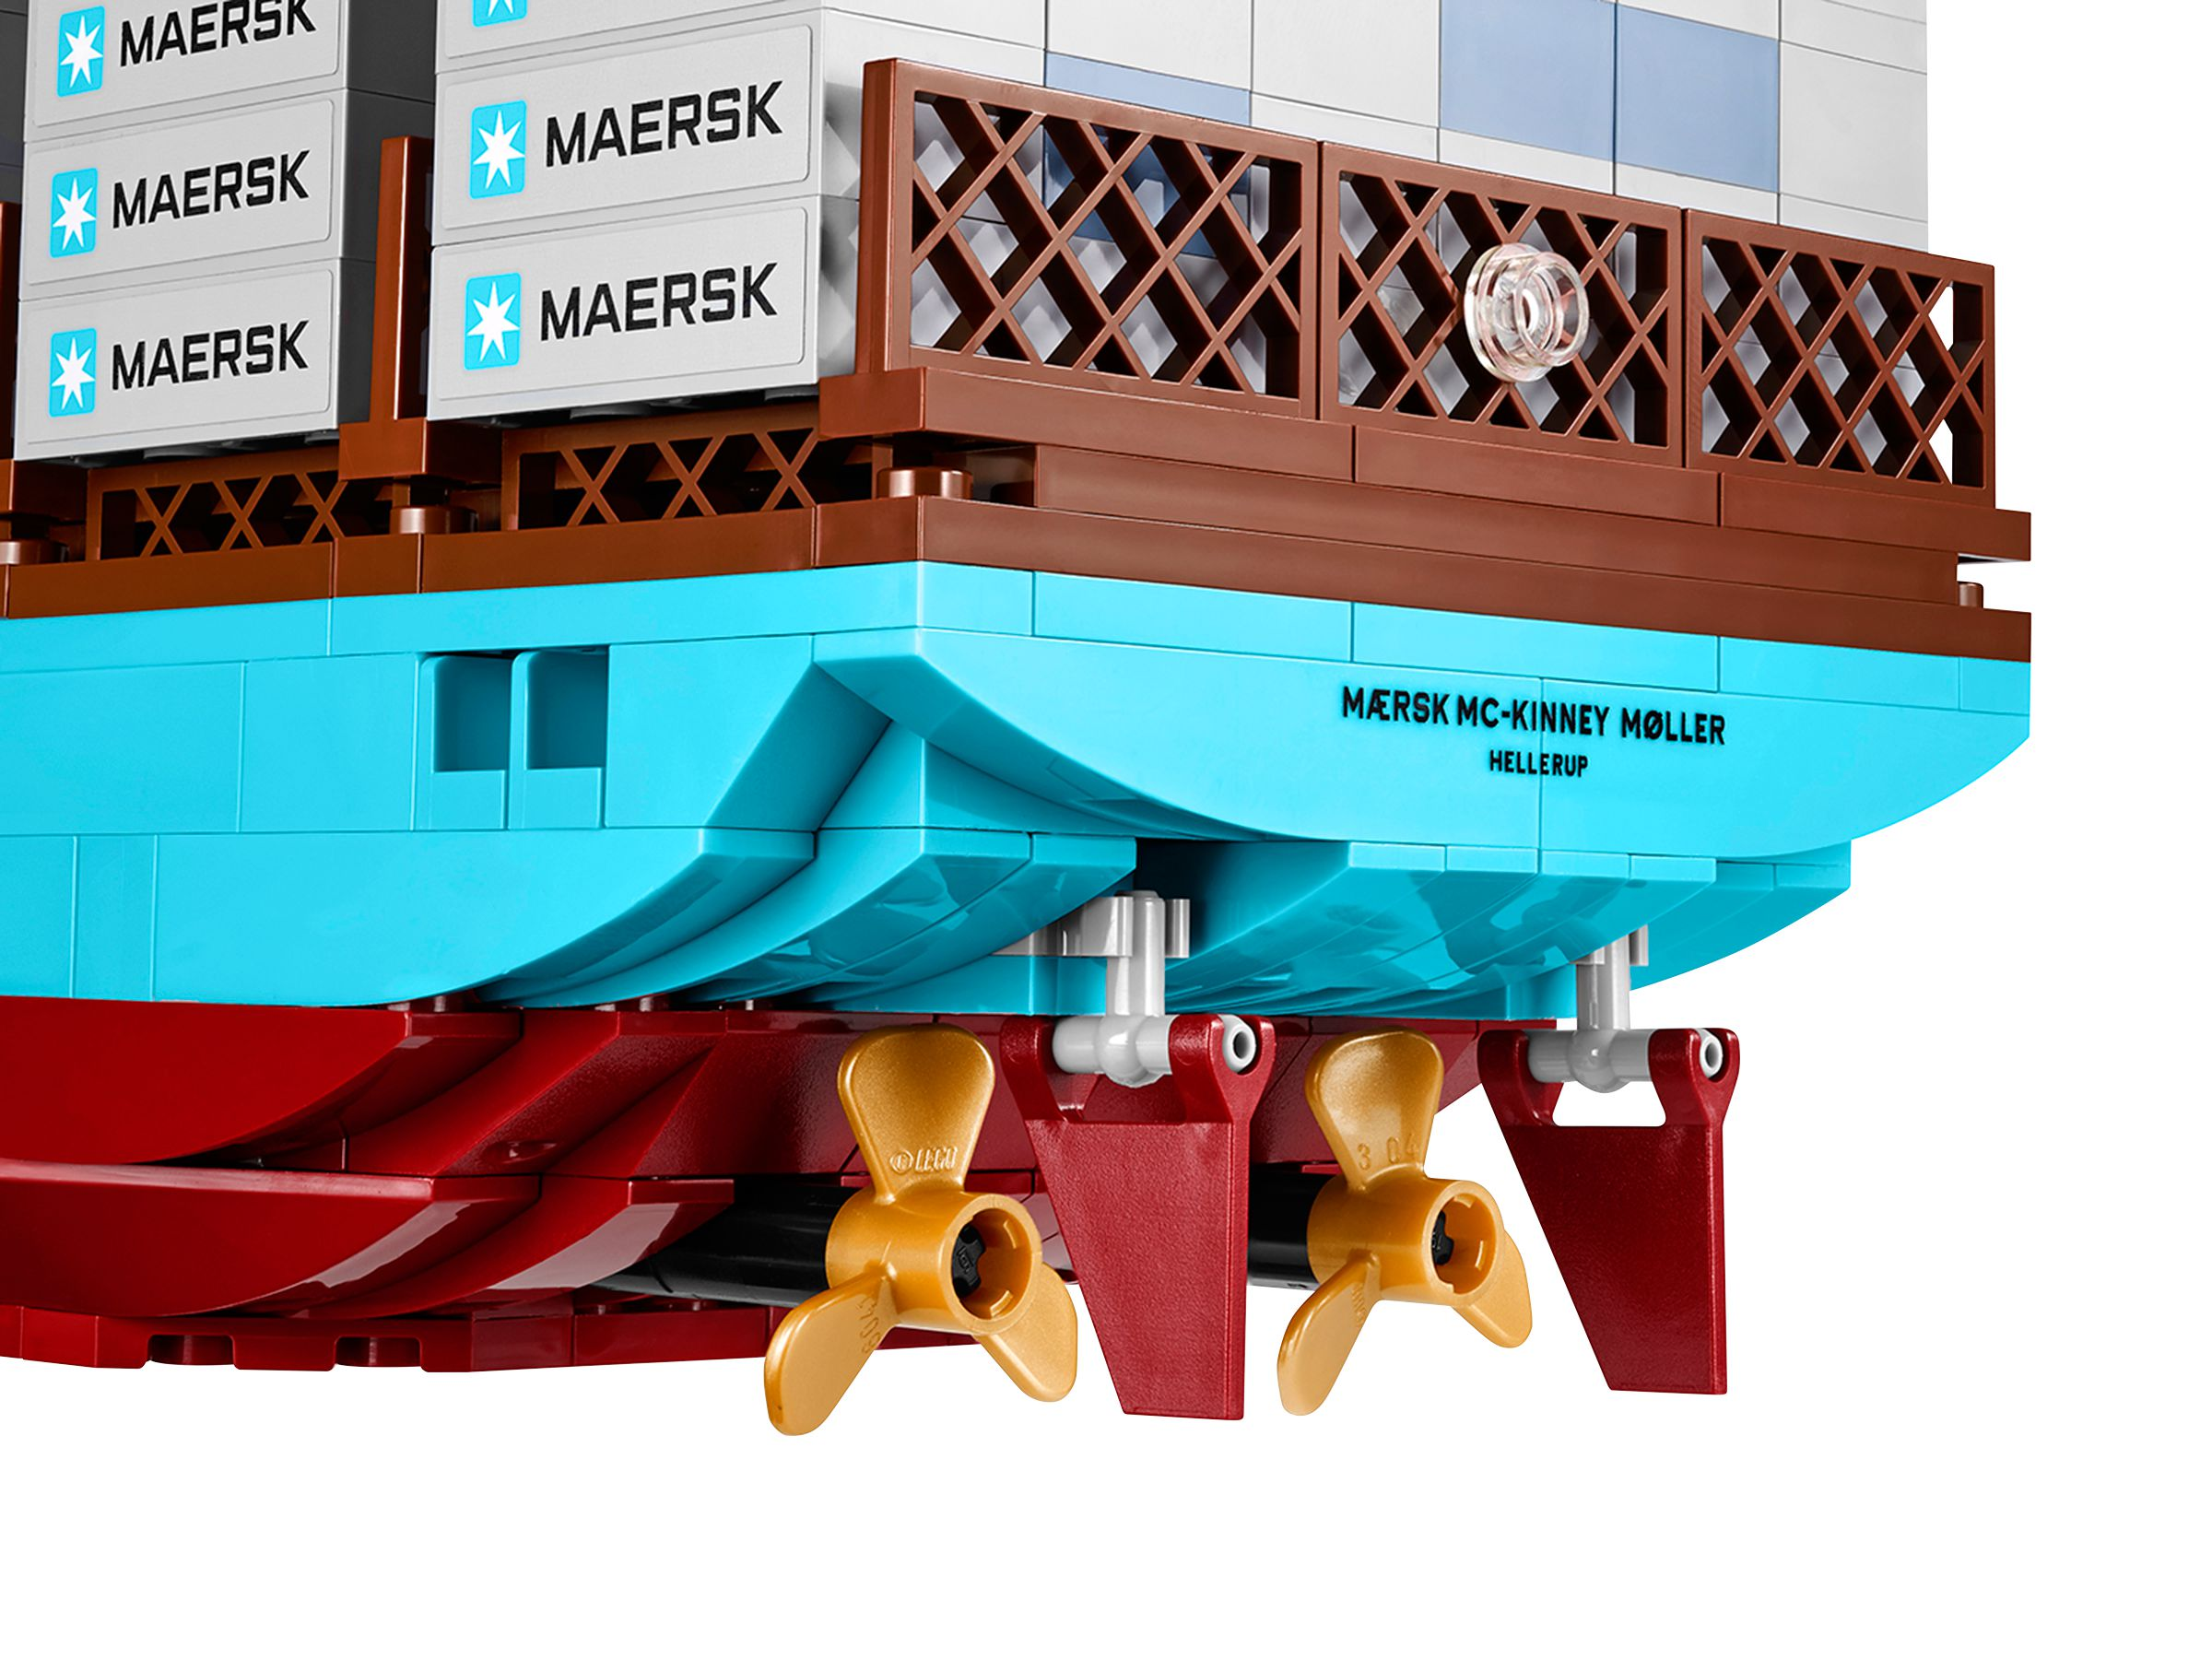 LEGO Advanced Models 10241 Maersk Containerschiff LEGO_10241_alt4.jpg